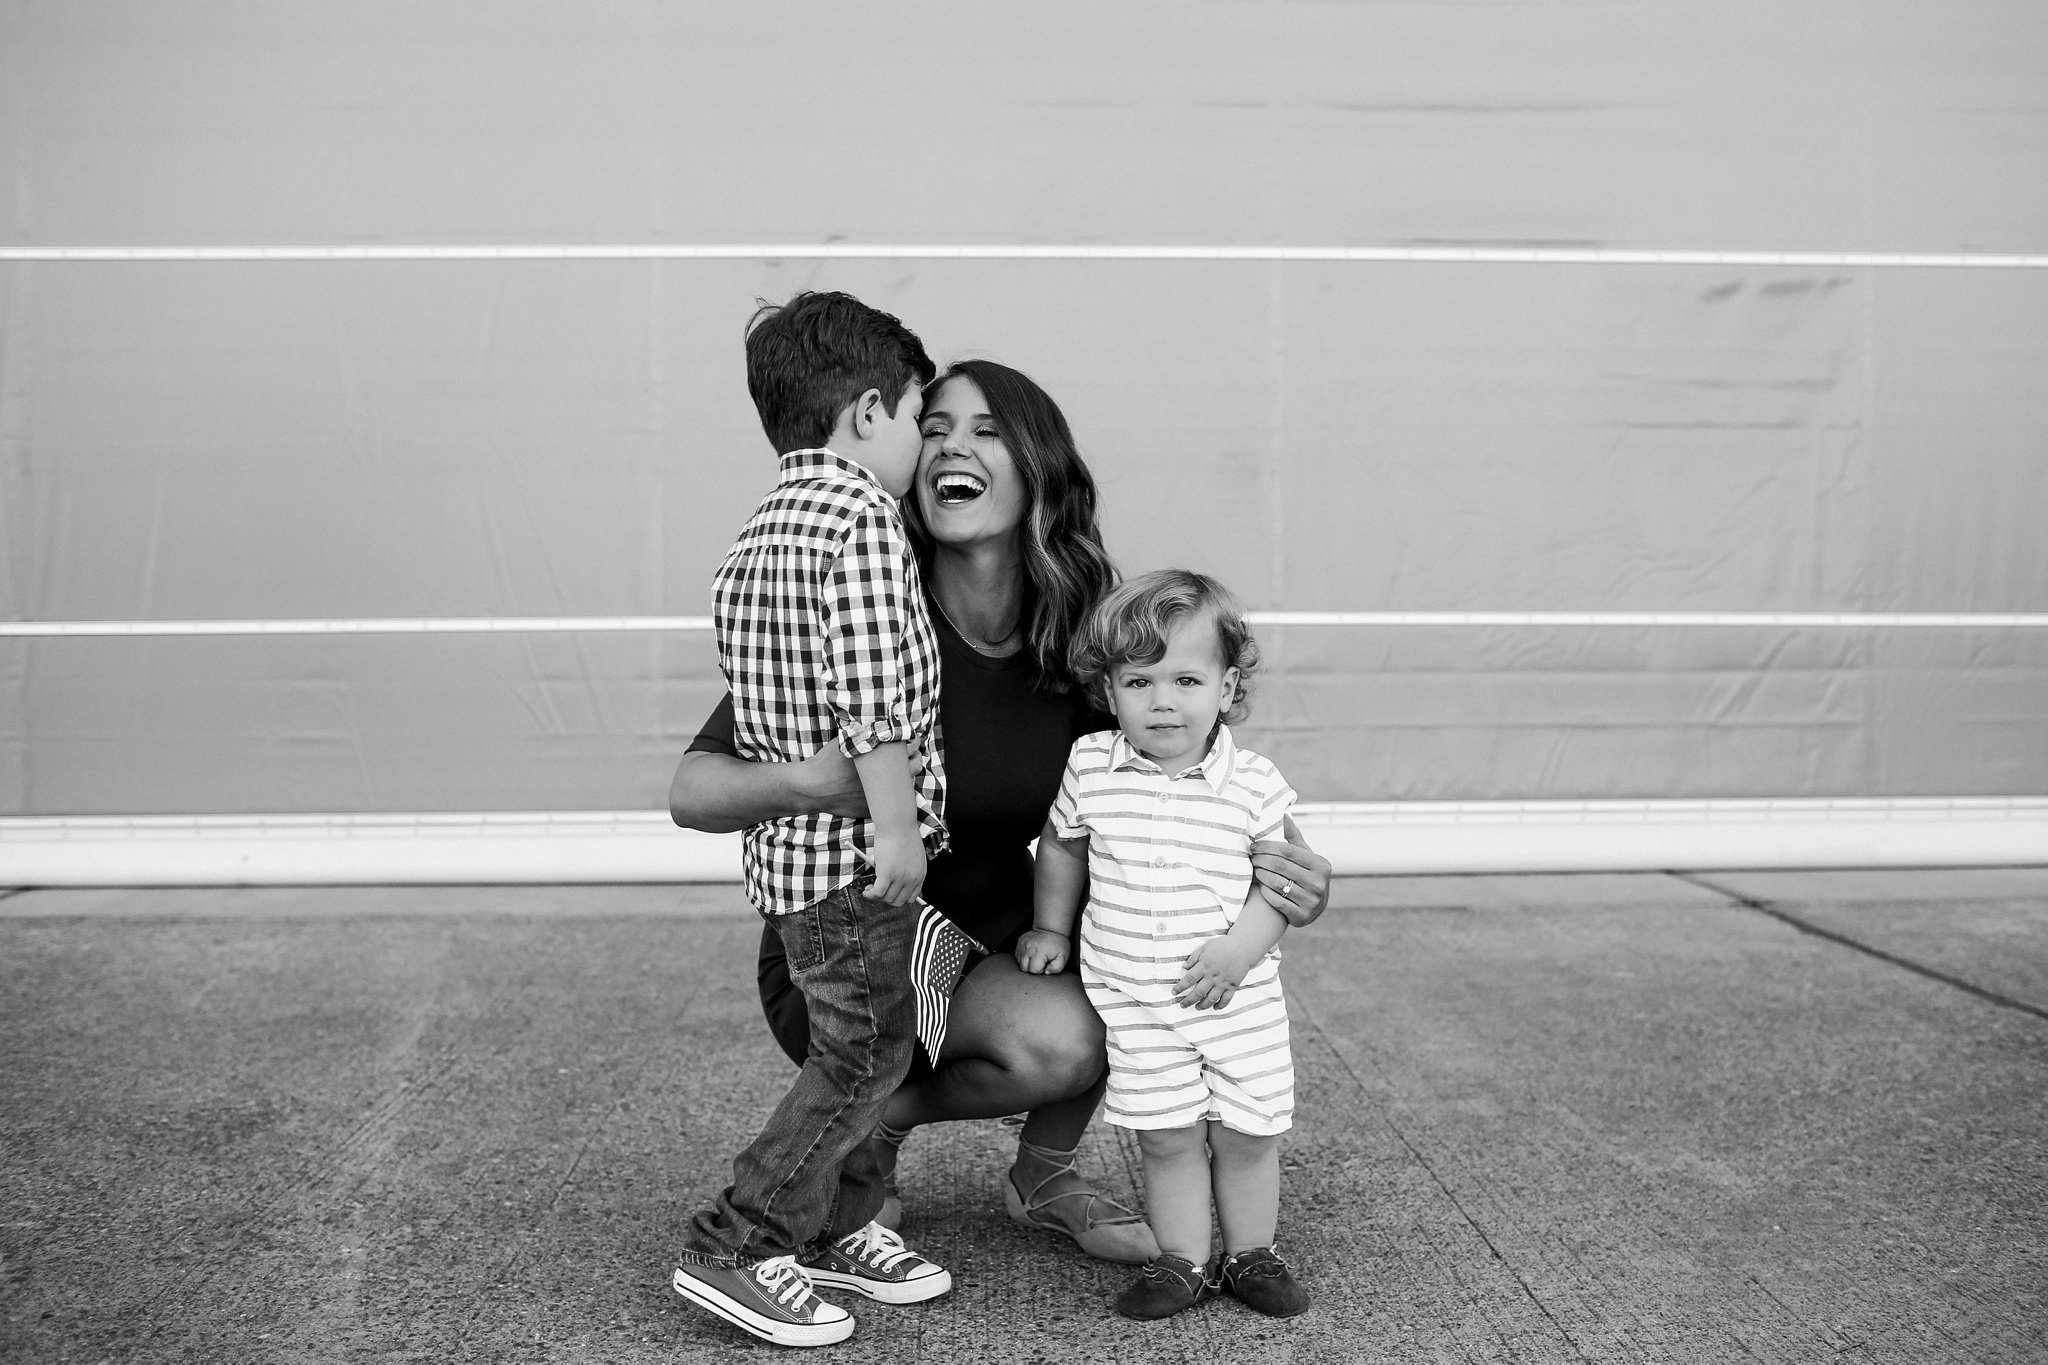 Whidbey-Island-Family-Photographer-Kara-Chappell-Photography_1130.jpg